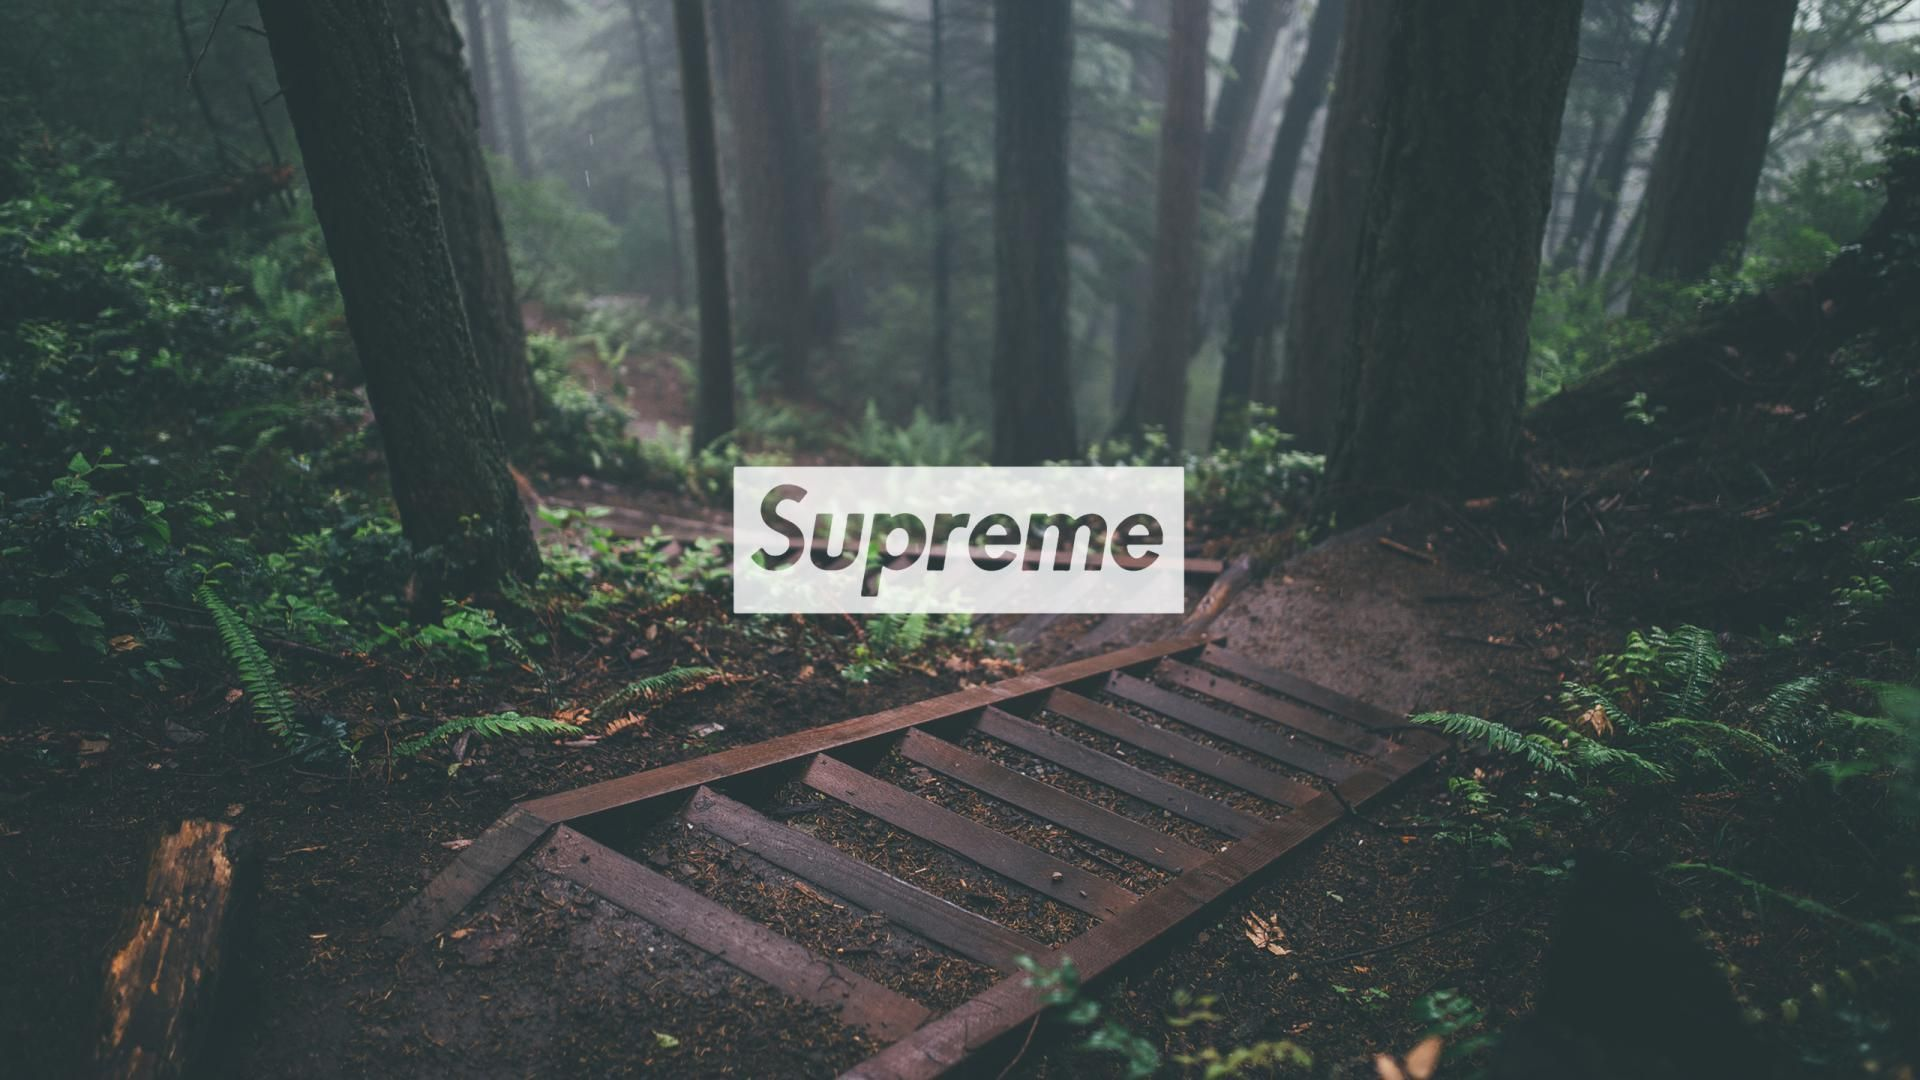 1920x1080 Supreme Full HD Wallpapers Free Download for Desktop PC | Wallpapers ...